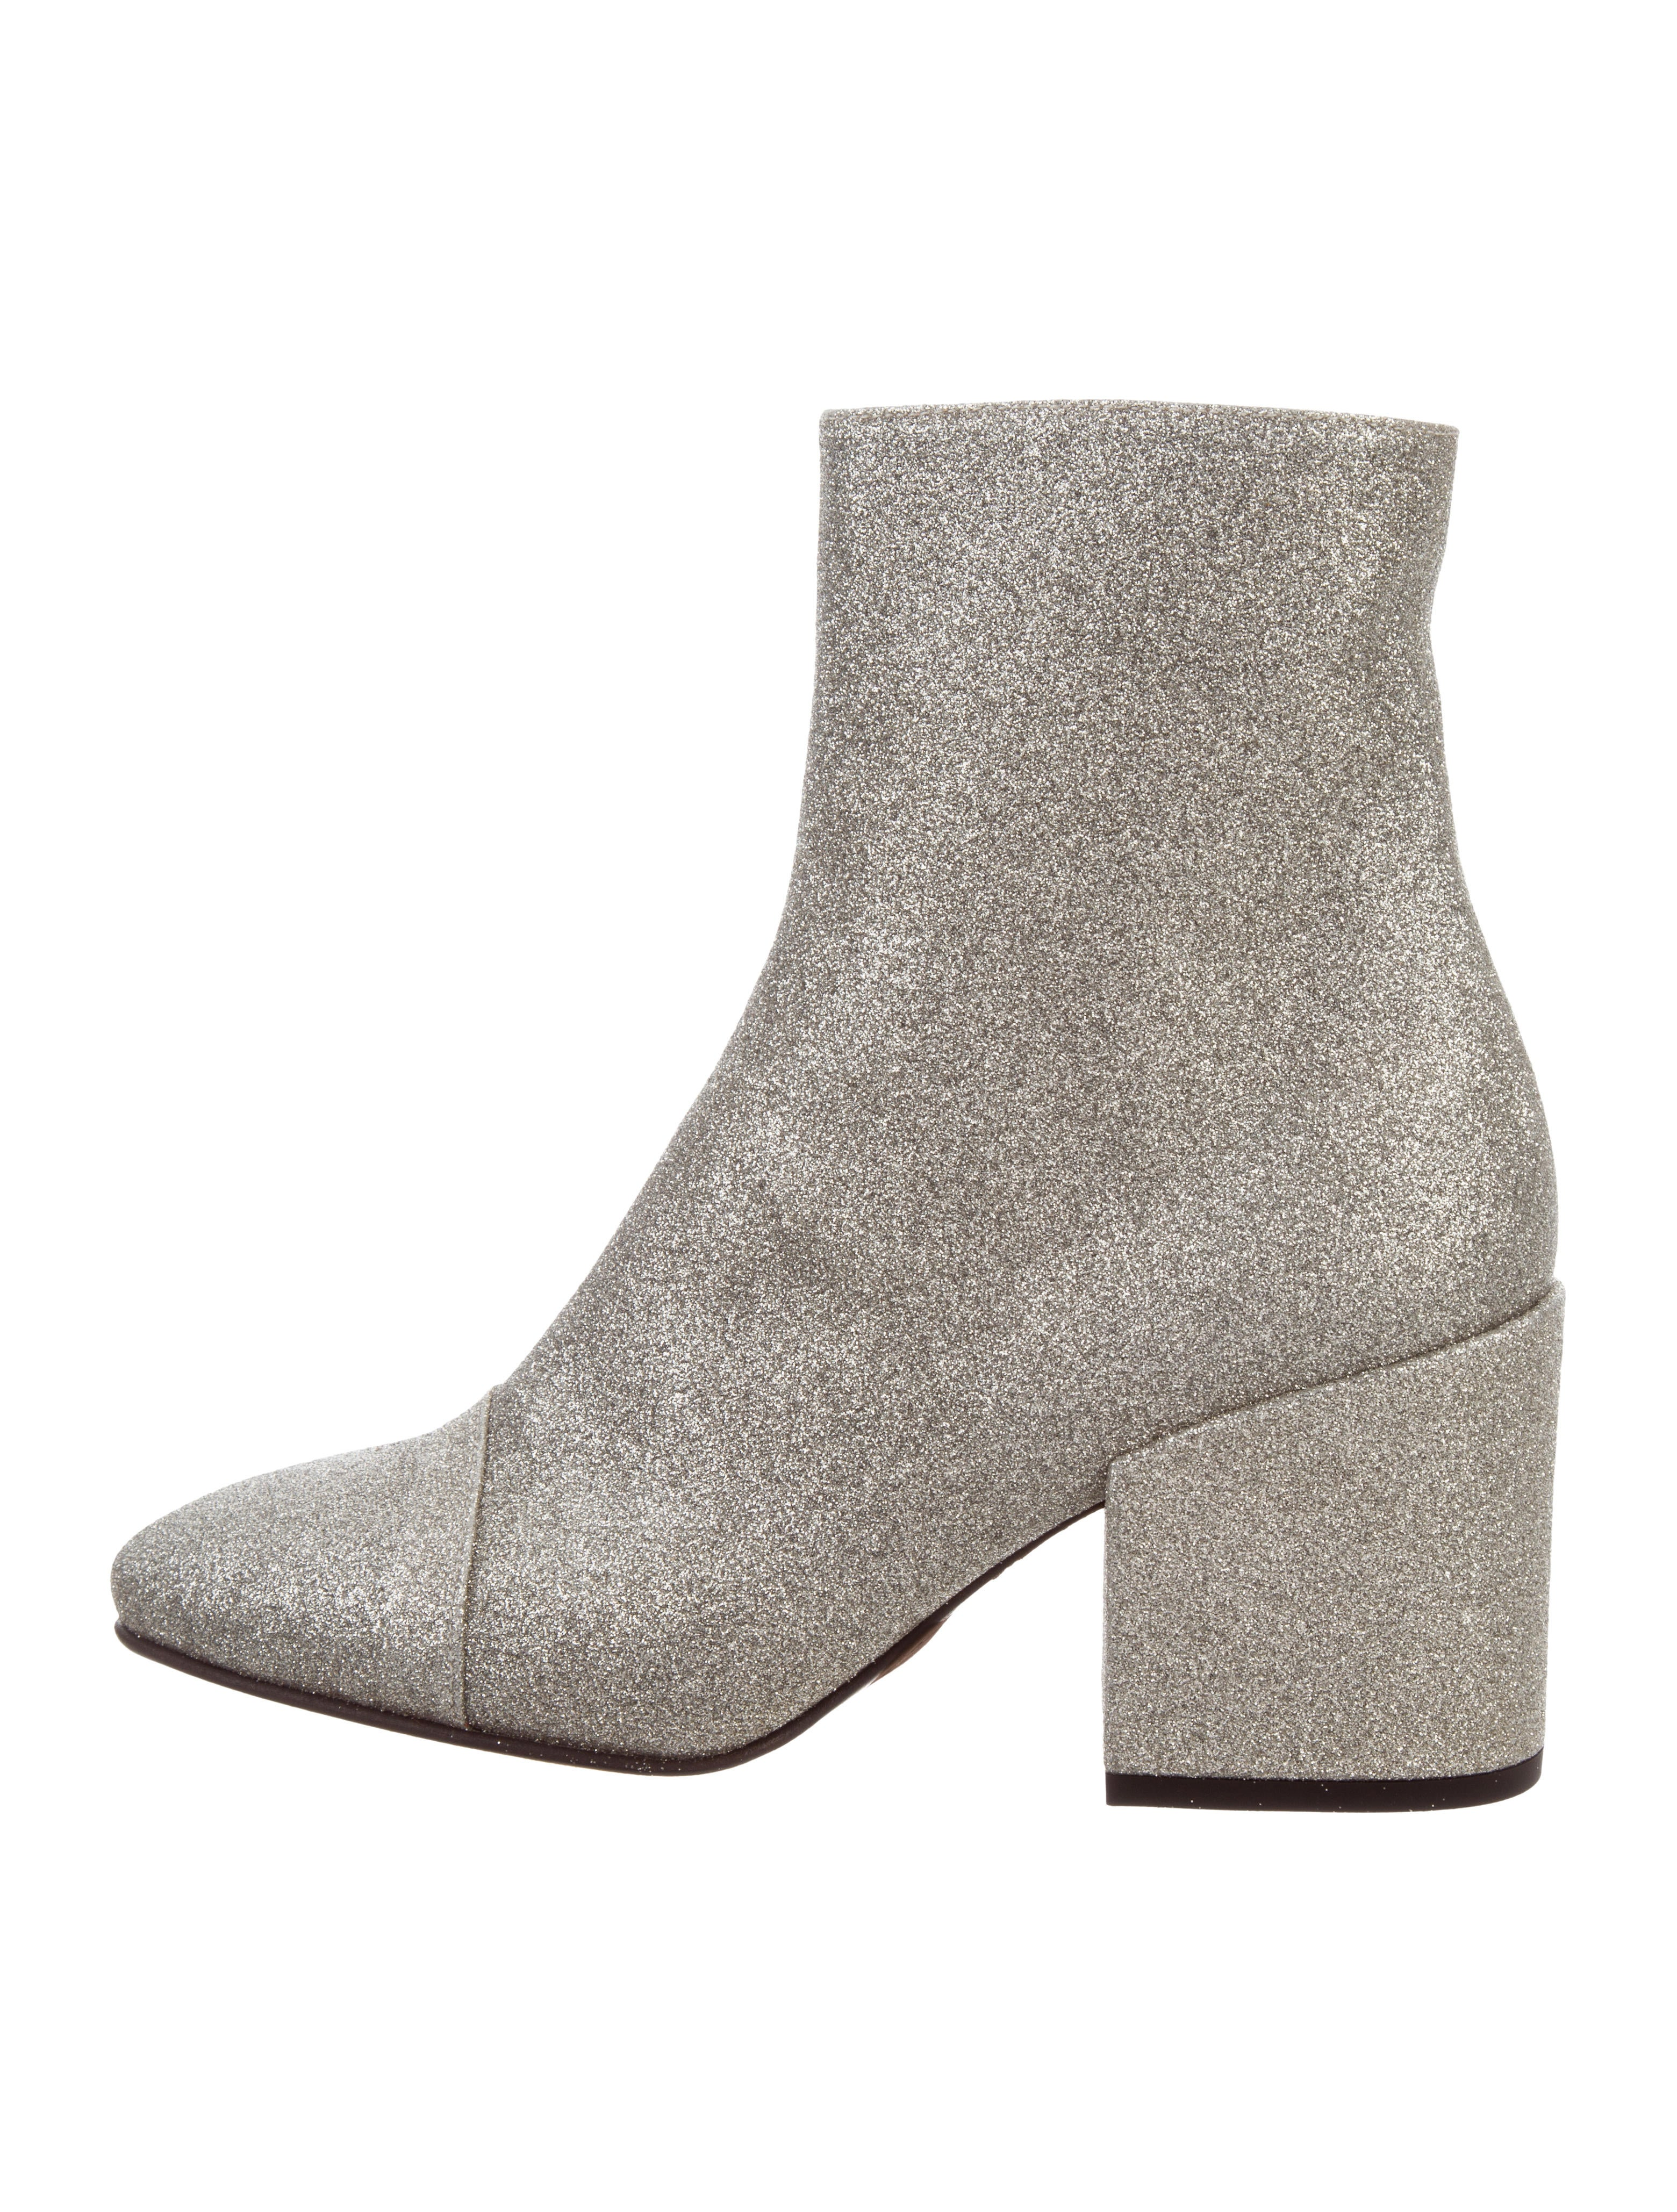 Dries Van Noten Glitter Ankle Boots w/ Tags in China cheap price footlocker sale online xUYzZZE